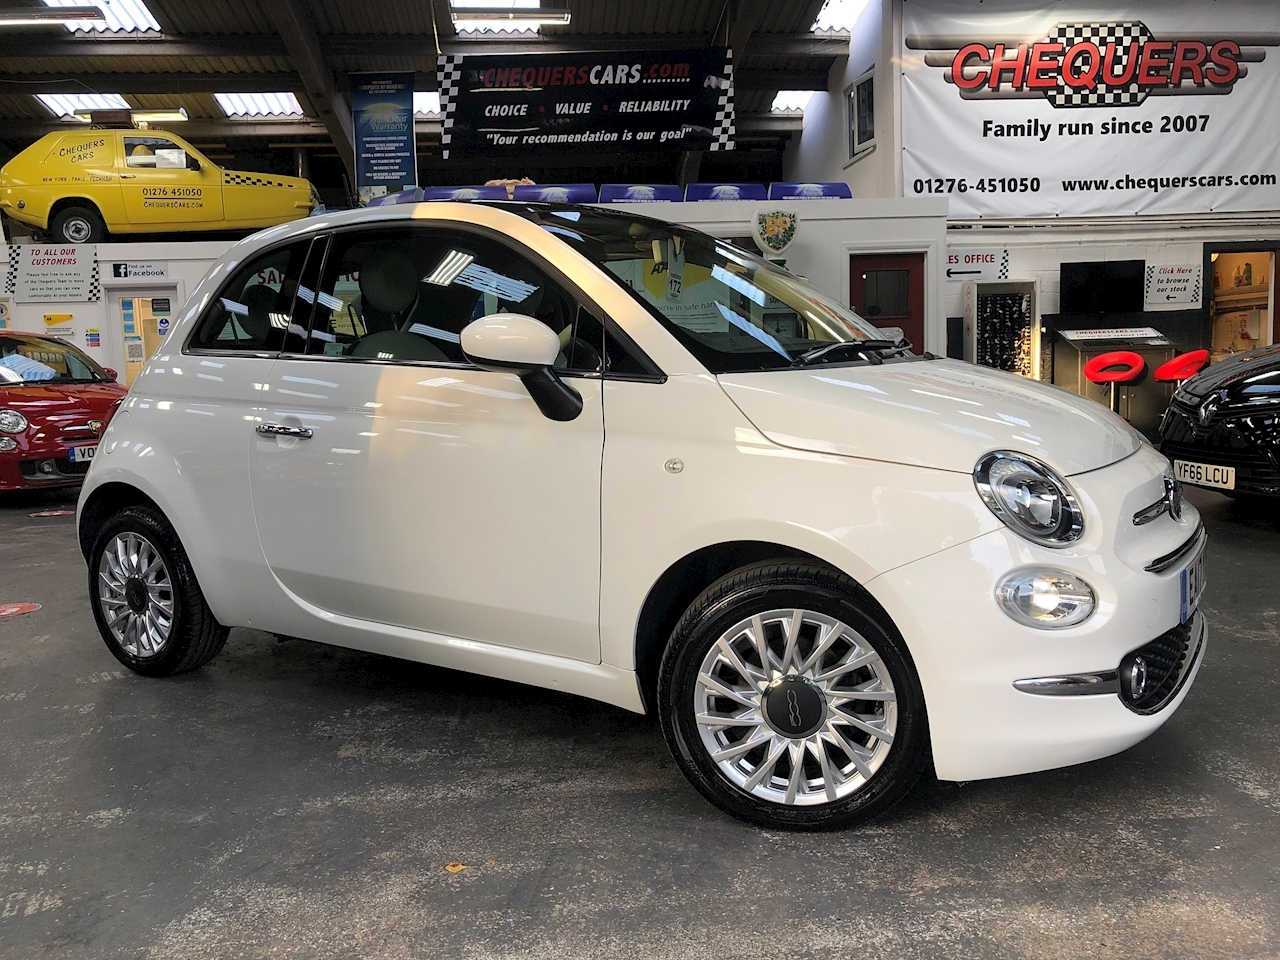 Fiat 500 500 My17 1.2 69hp Lounge Hatchback 1.2 Manual Petrol